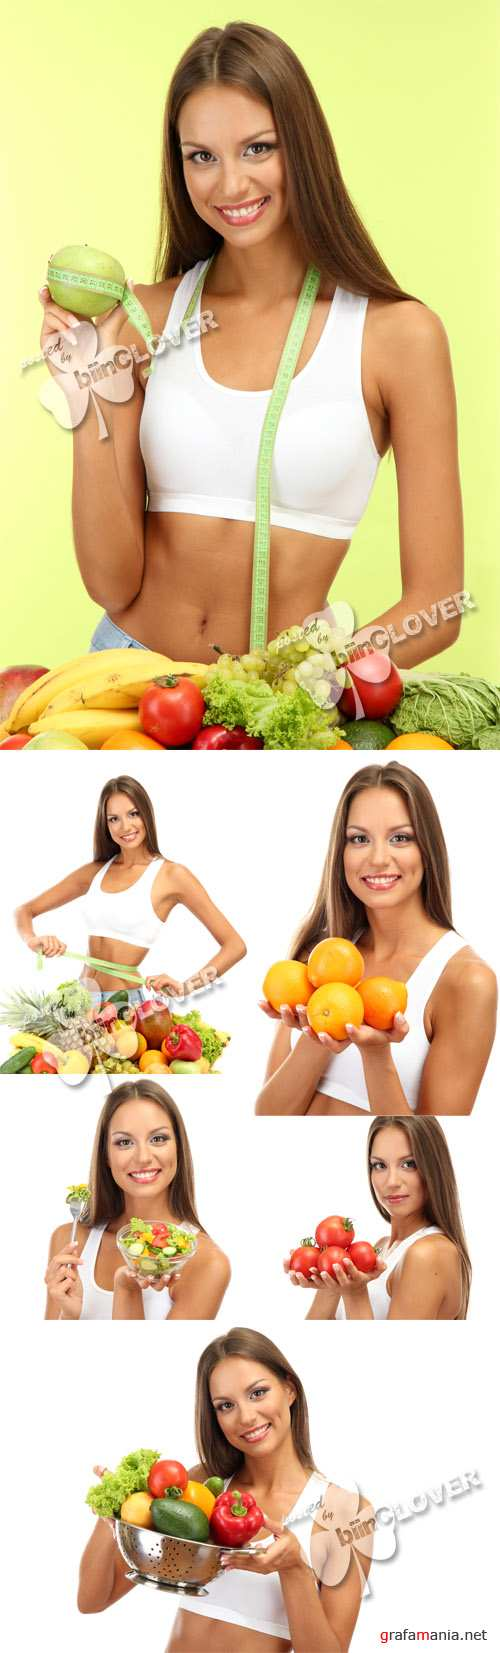 Woman with fruits and vegetables 0272